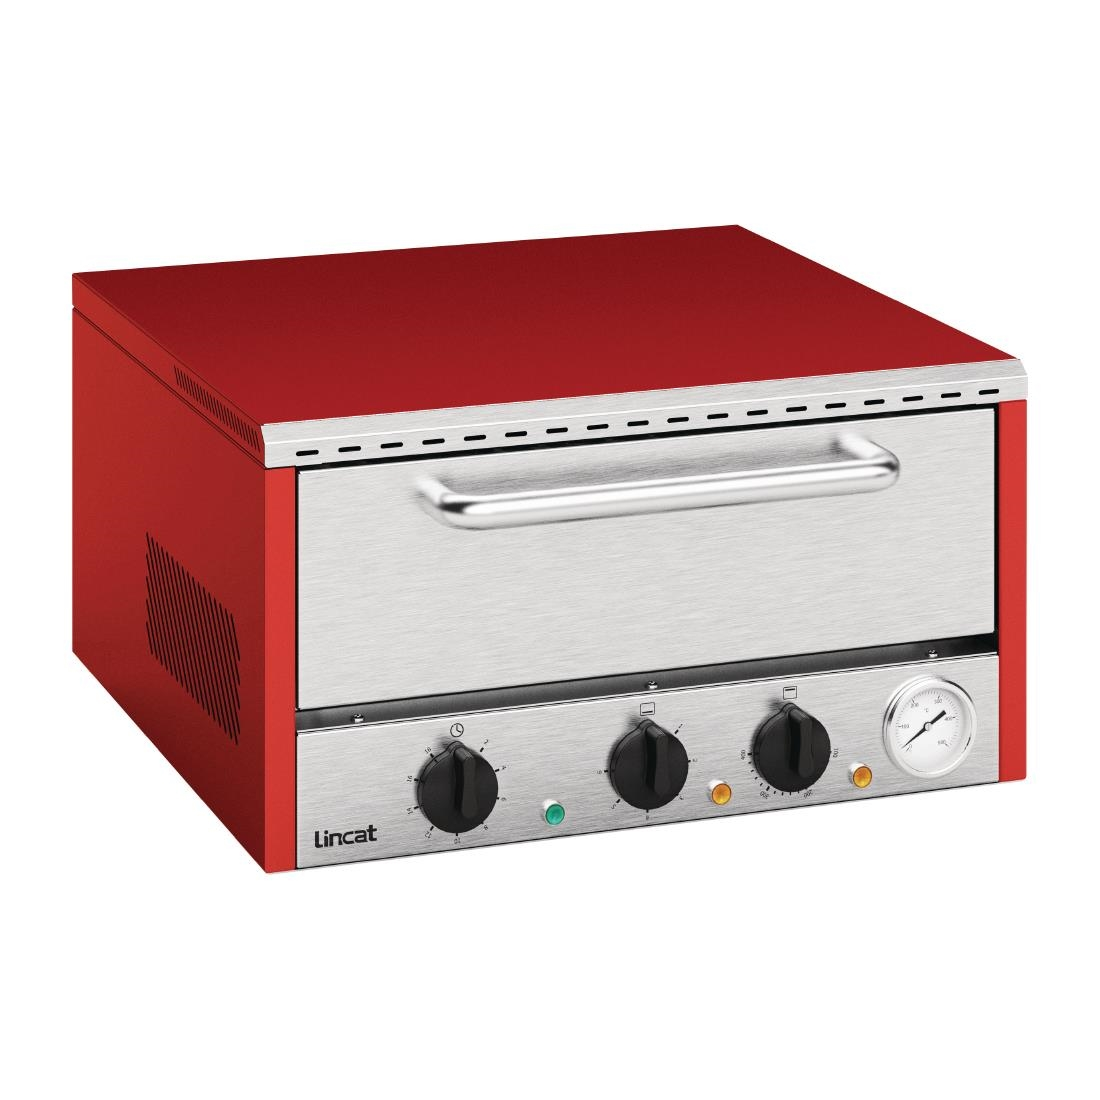 Image of Lincat Lynx 400 Pizza Oven Red LPDO